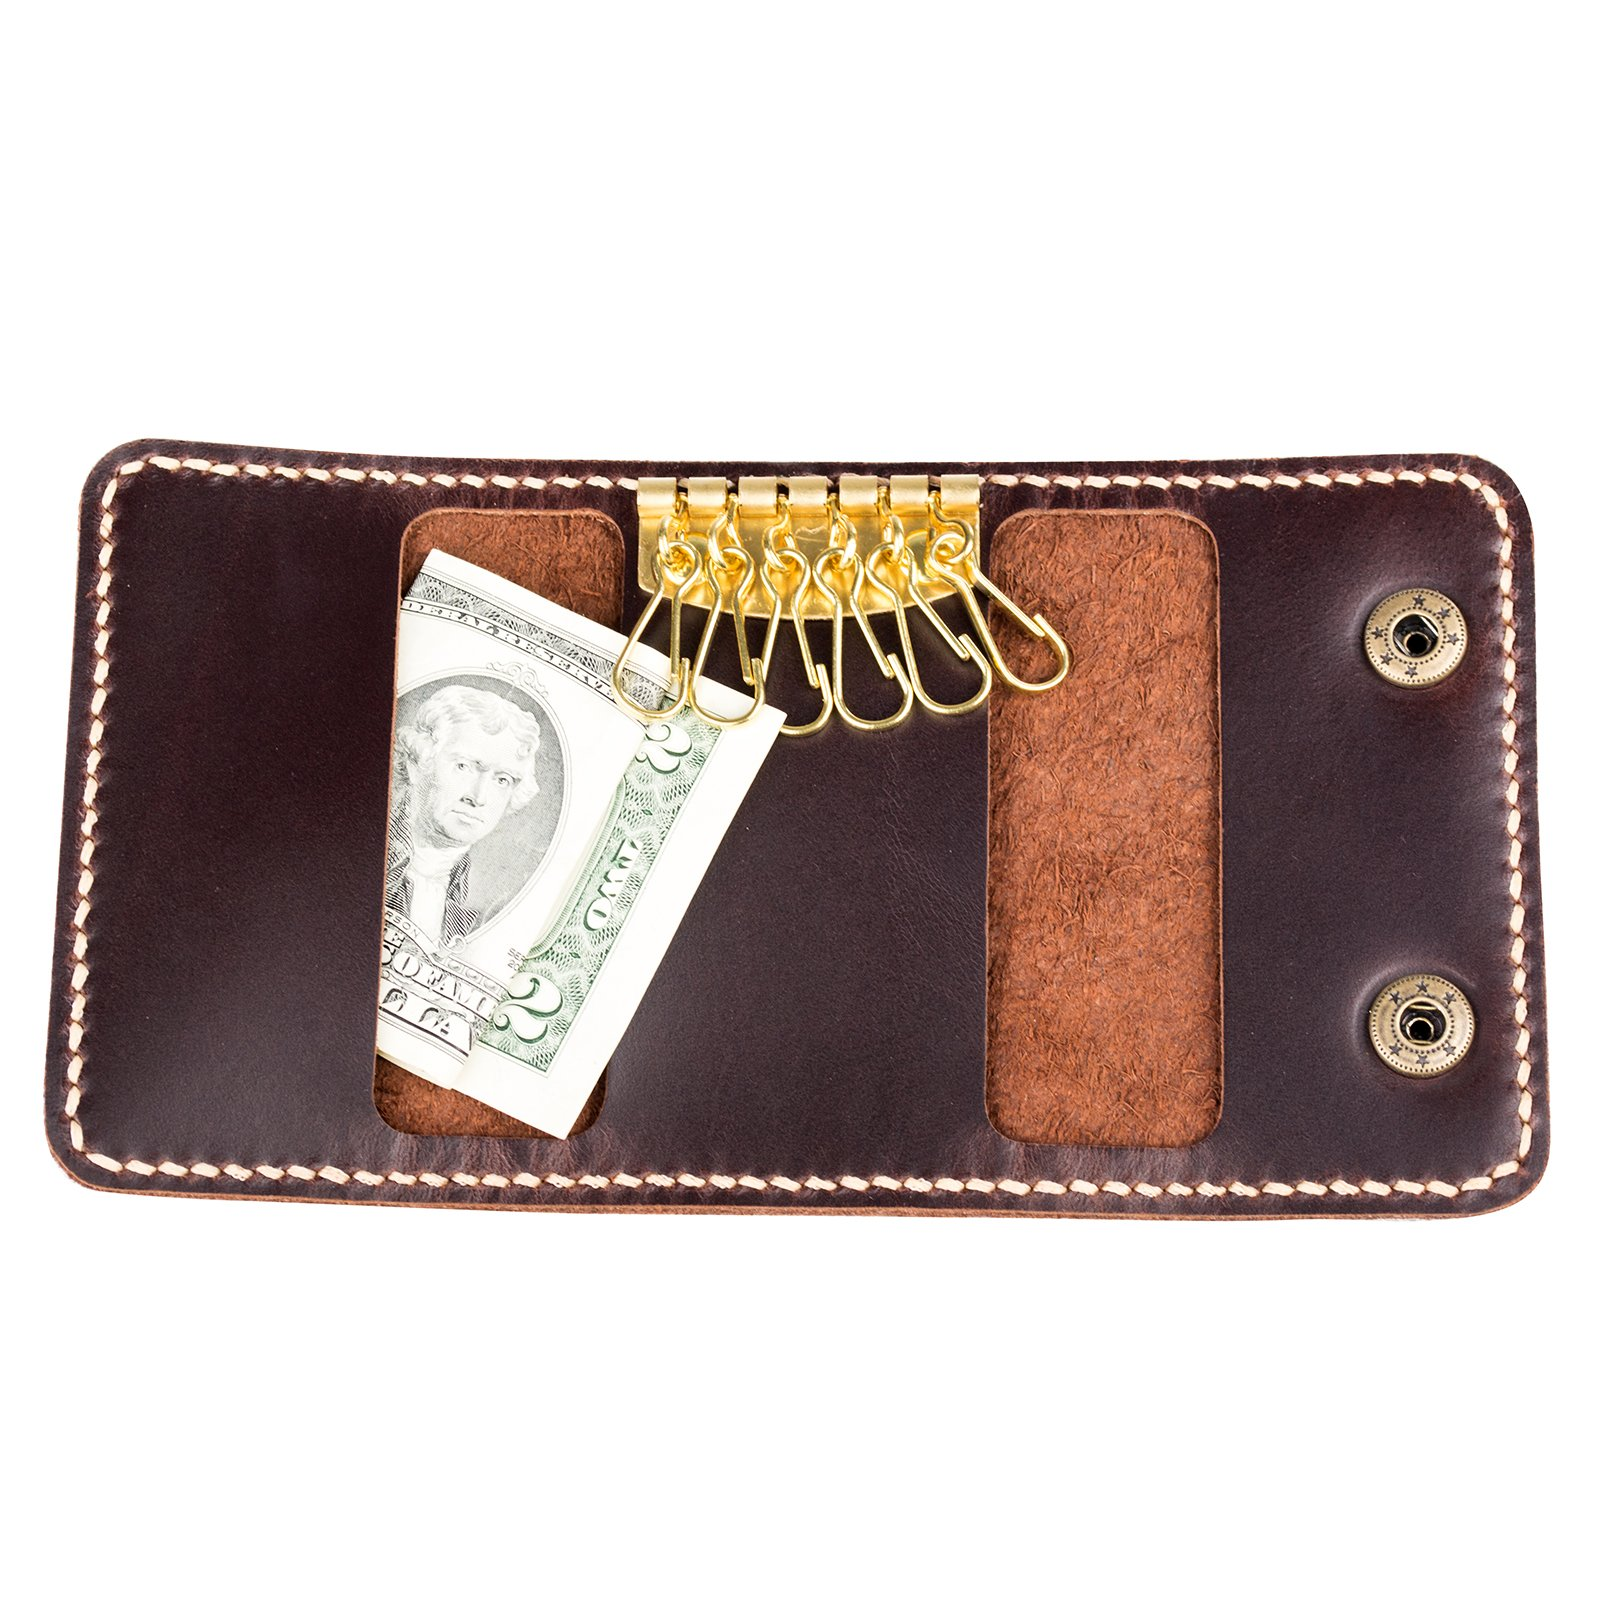 Mens High Quality Genuine Leather Handmade Keycase ID Card Case Wallet